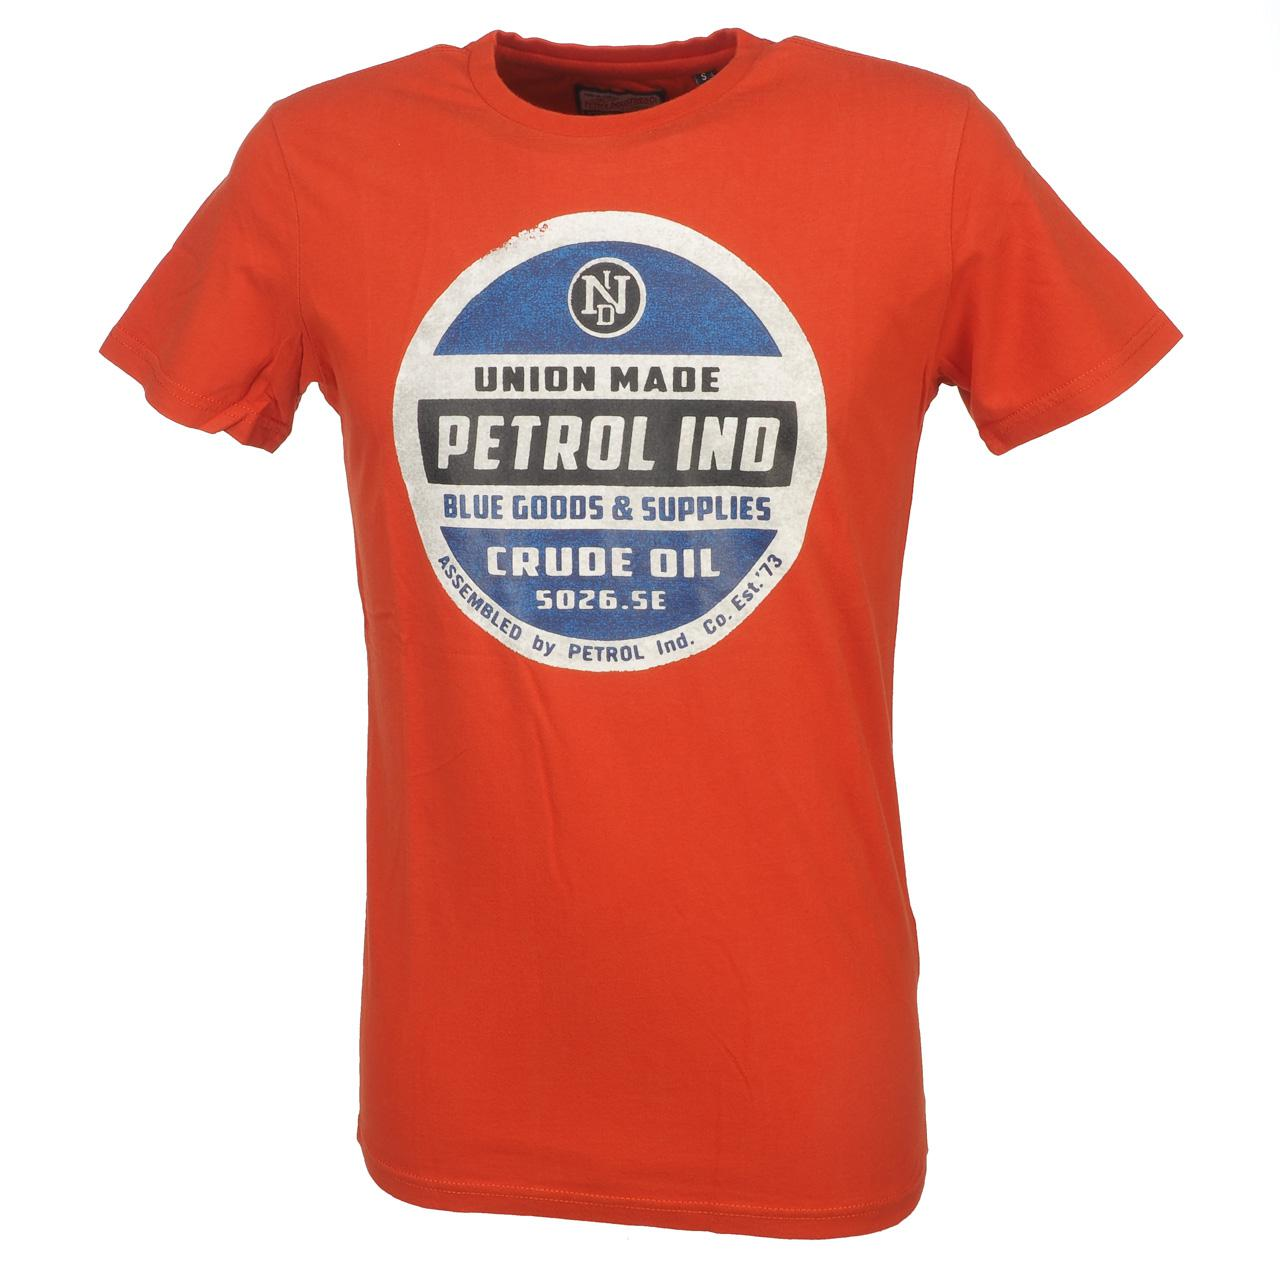 Short-Petrol-industries-Tsr607-Burnt-Orange-Mctee-Orange-137